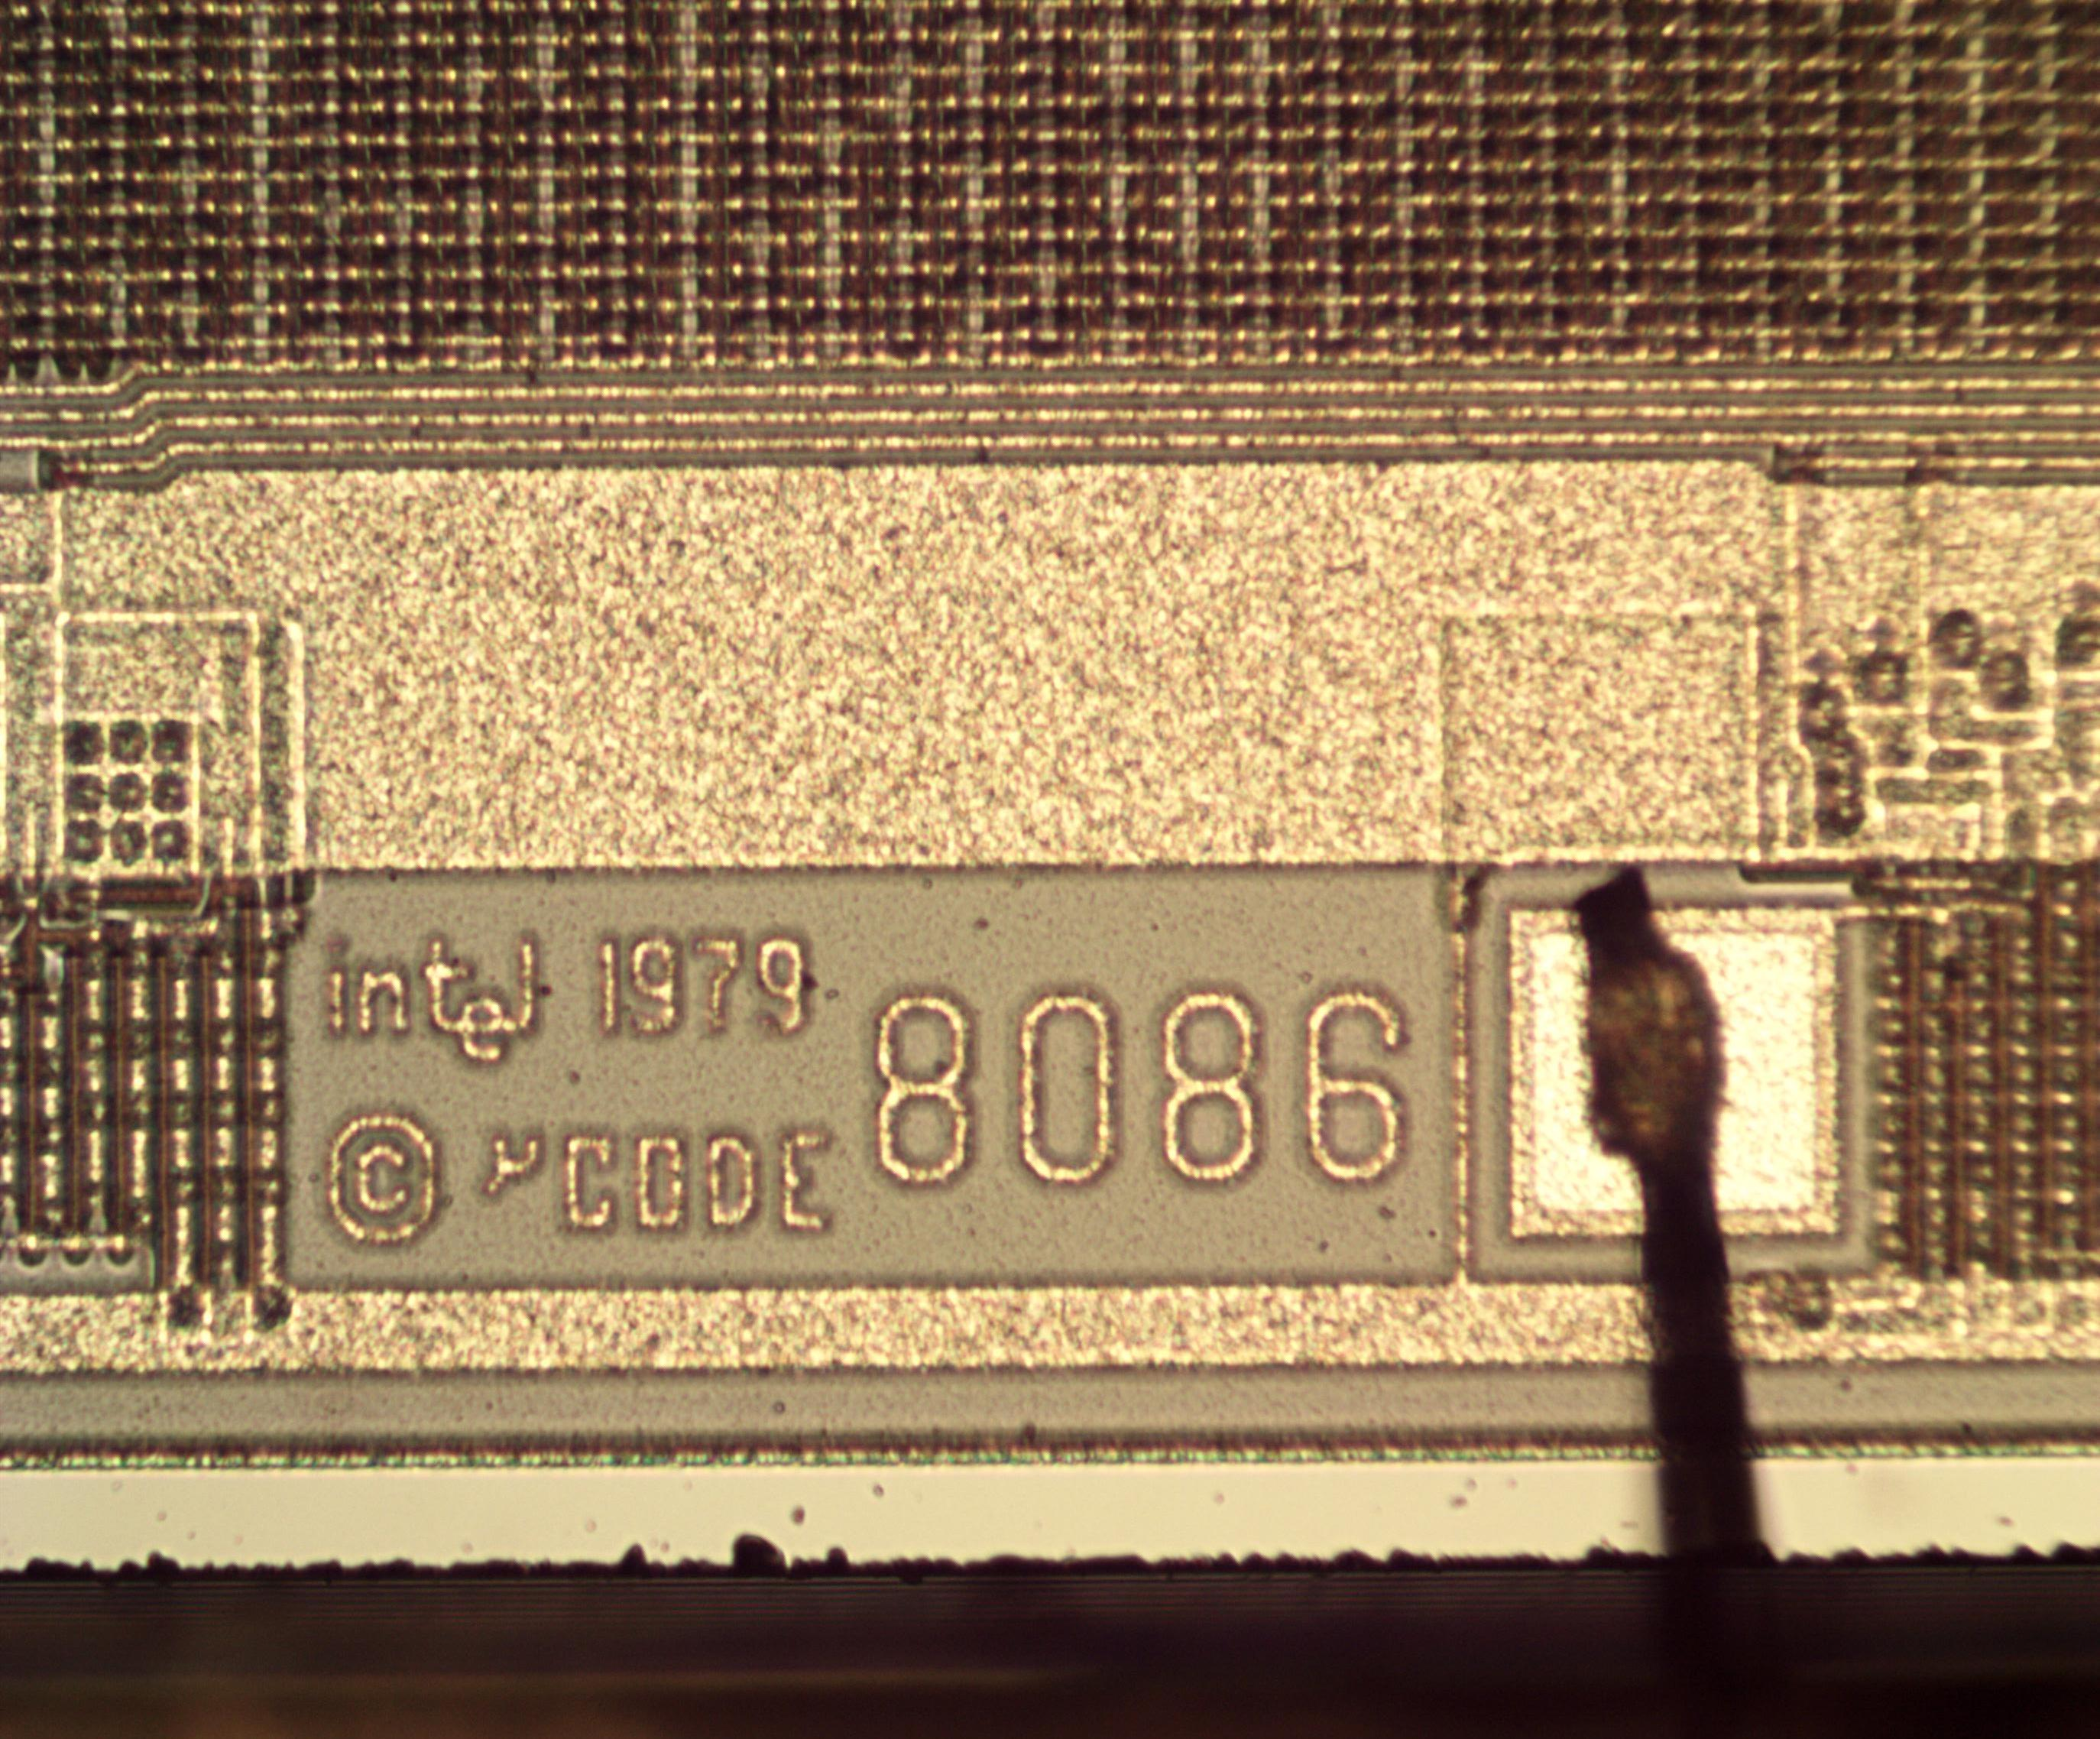 "Detail of the 8086 die showing text: ""intel 1979 © μCODE [i.e. microcode] 8086""."